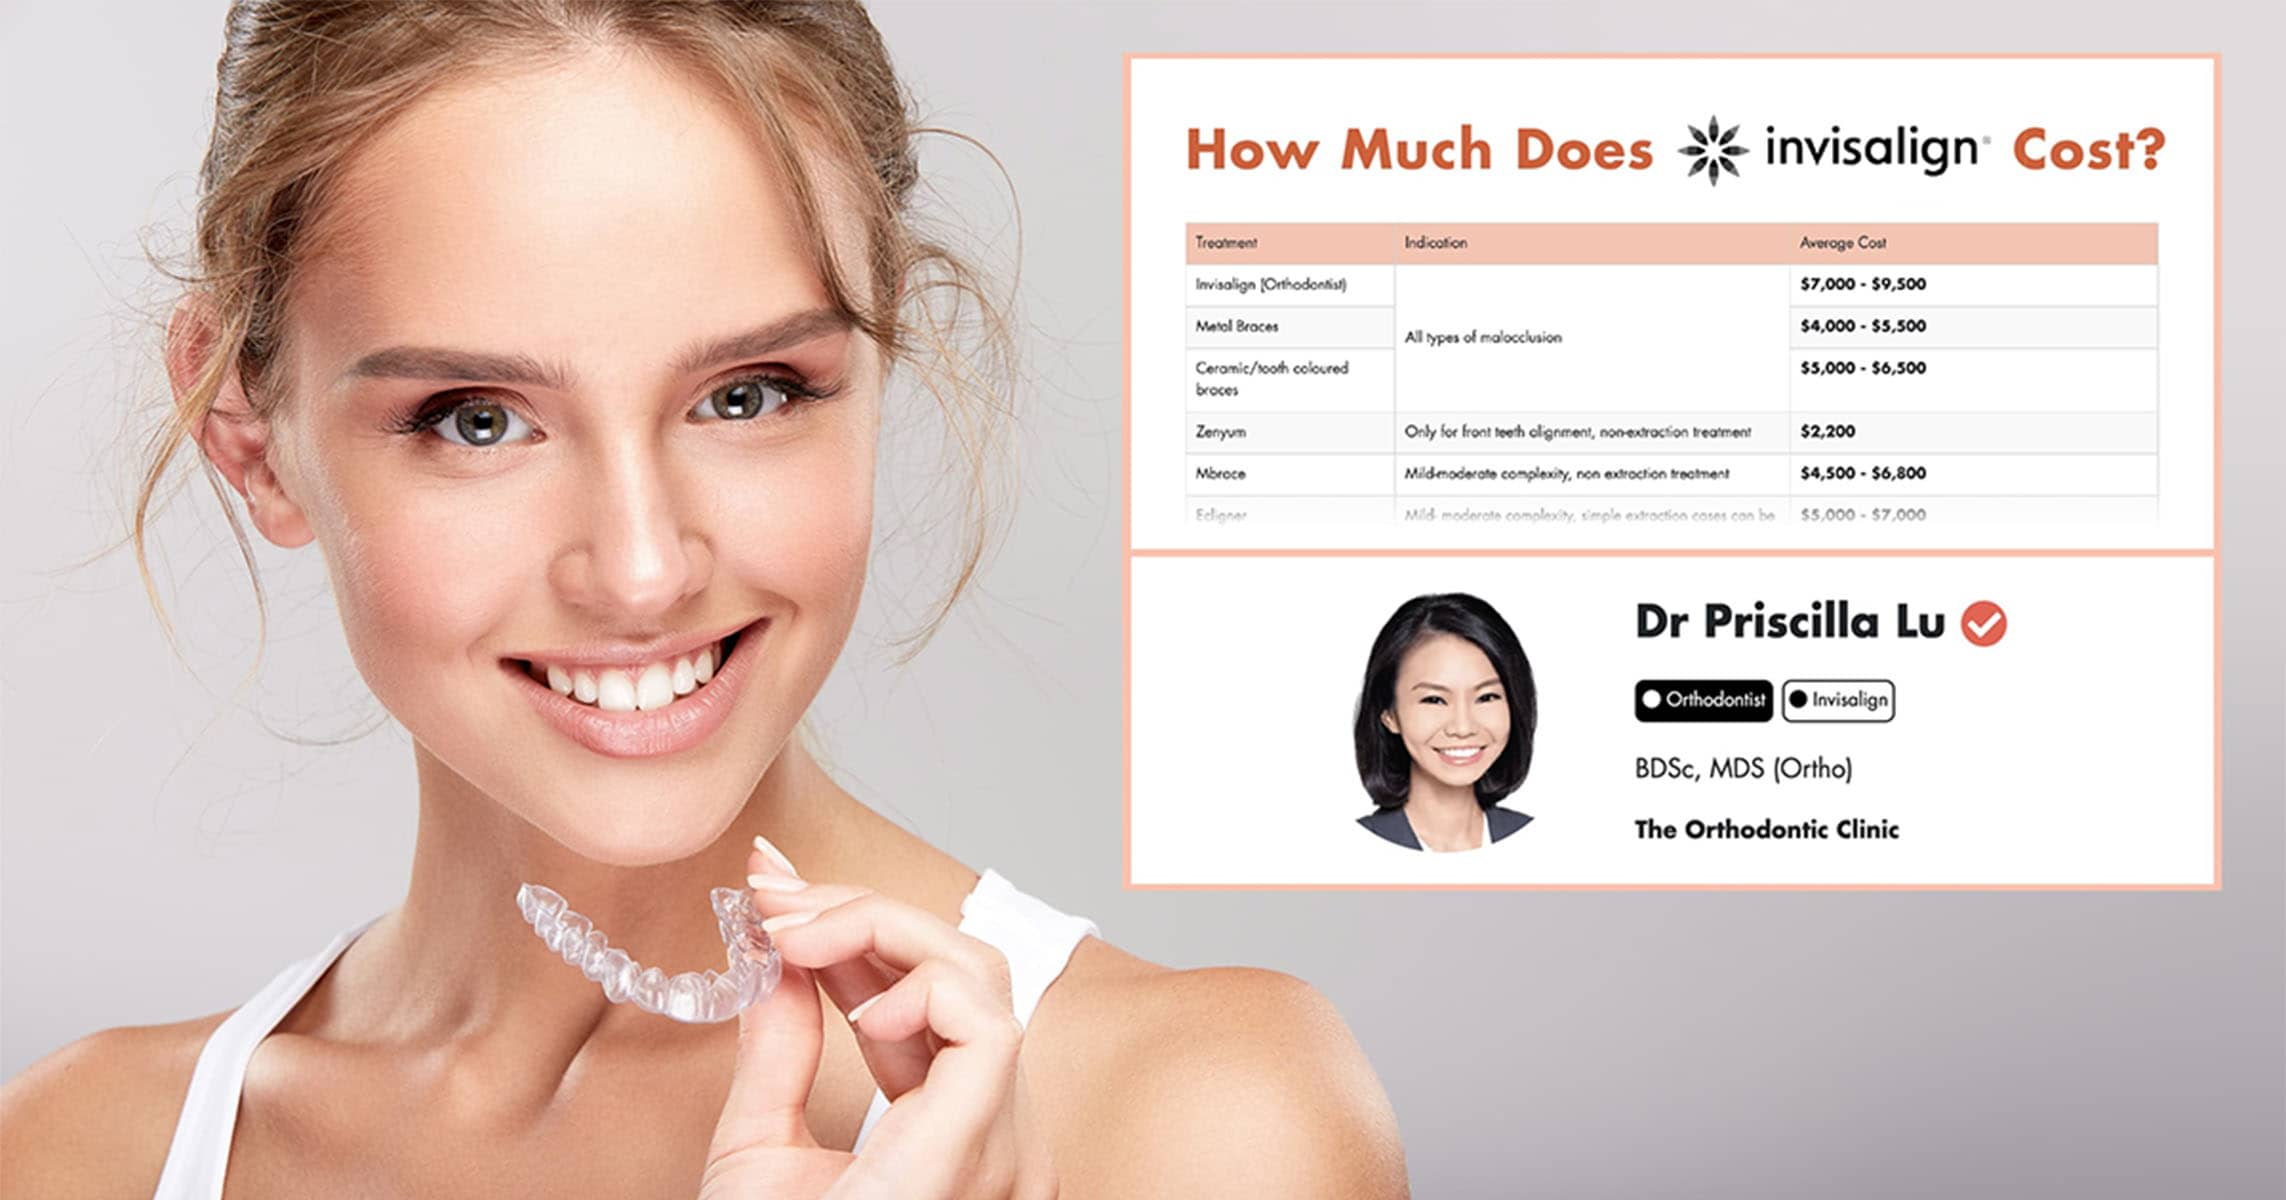 Invisalign Costs In Singapore: An Orthodontist Tells All